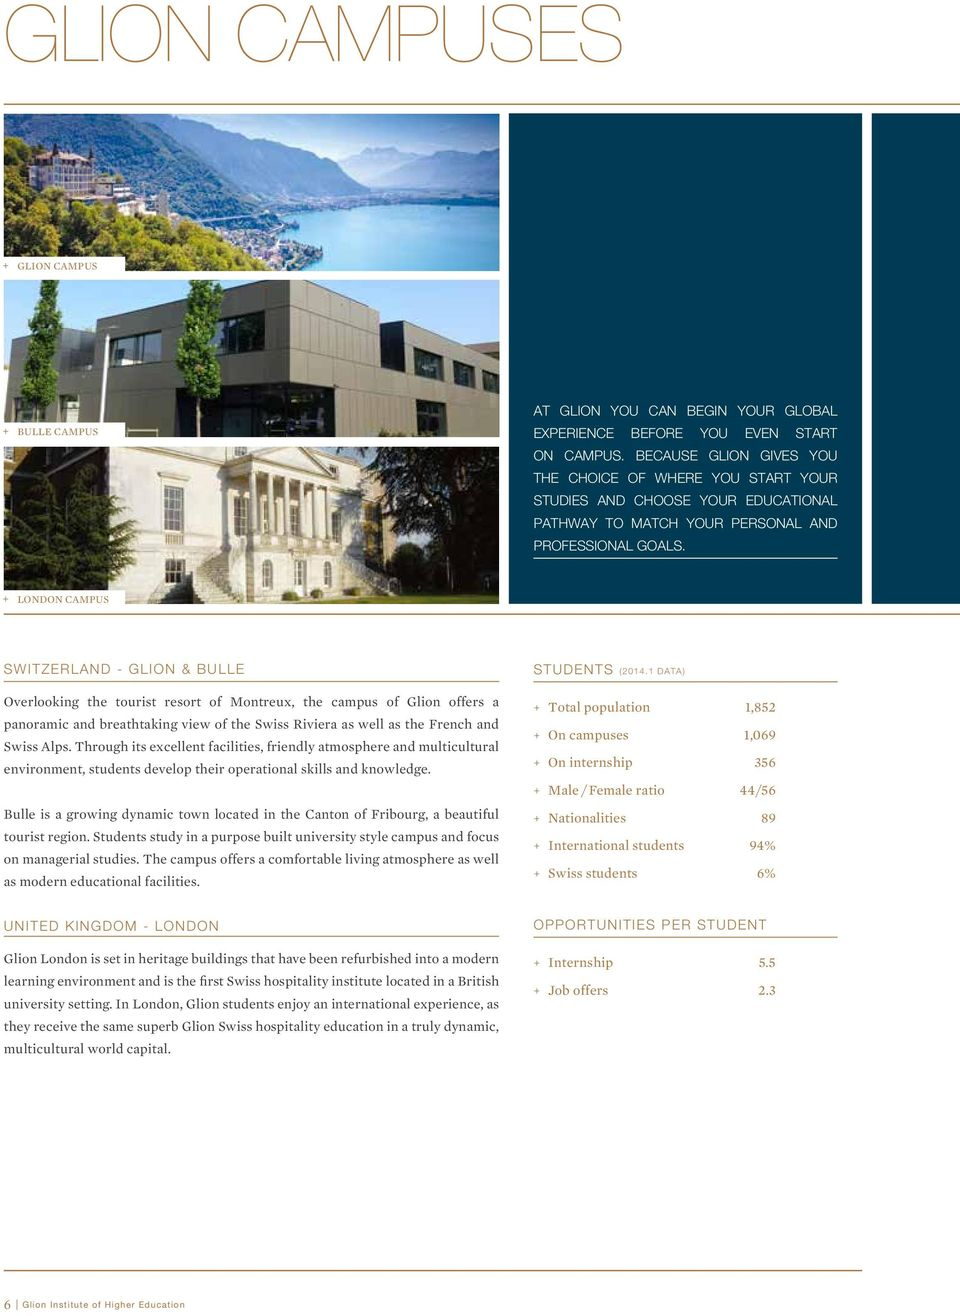 + + LONDON CAMPUS SWITZERLAND - GLION & BULLE Overlooking the tourist resort of Montreux, the campus of Glion offers a panoramic and breathtaking view of the Swiss Riviera as well as the French and